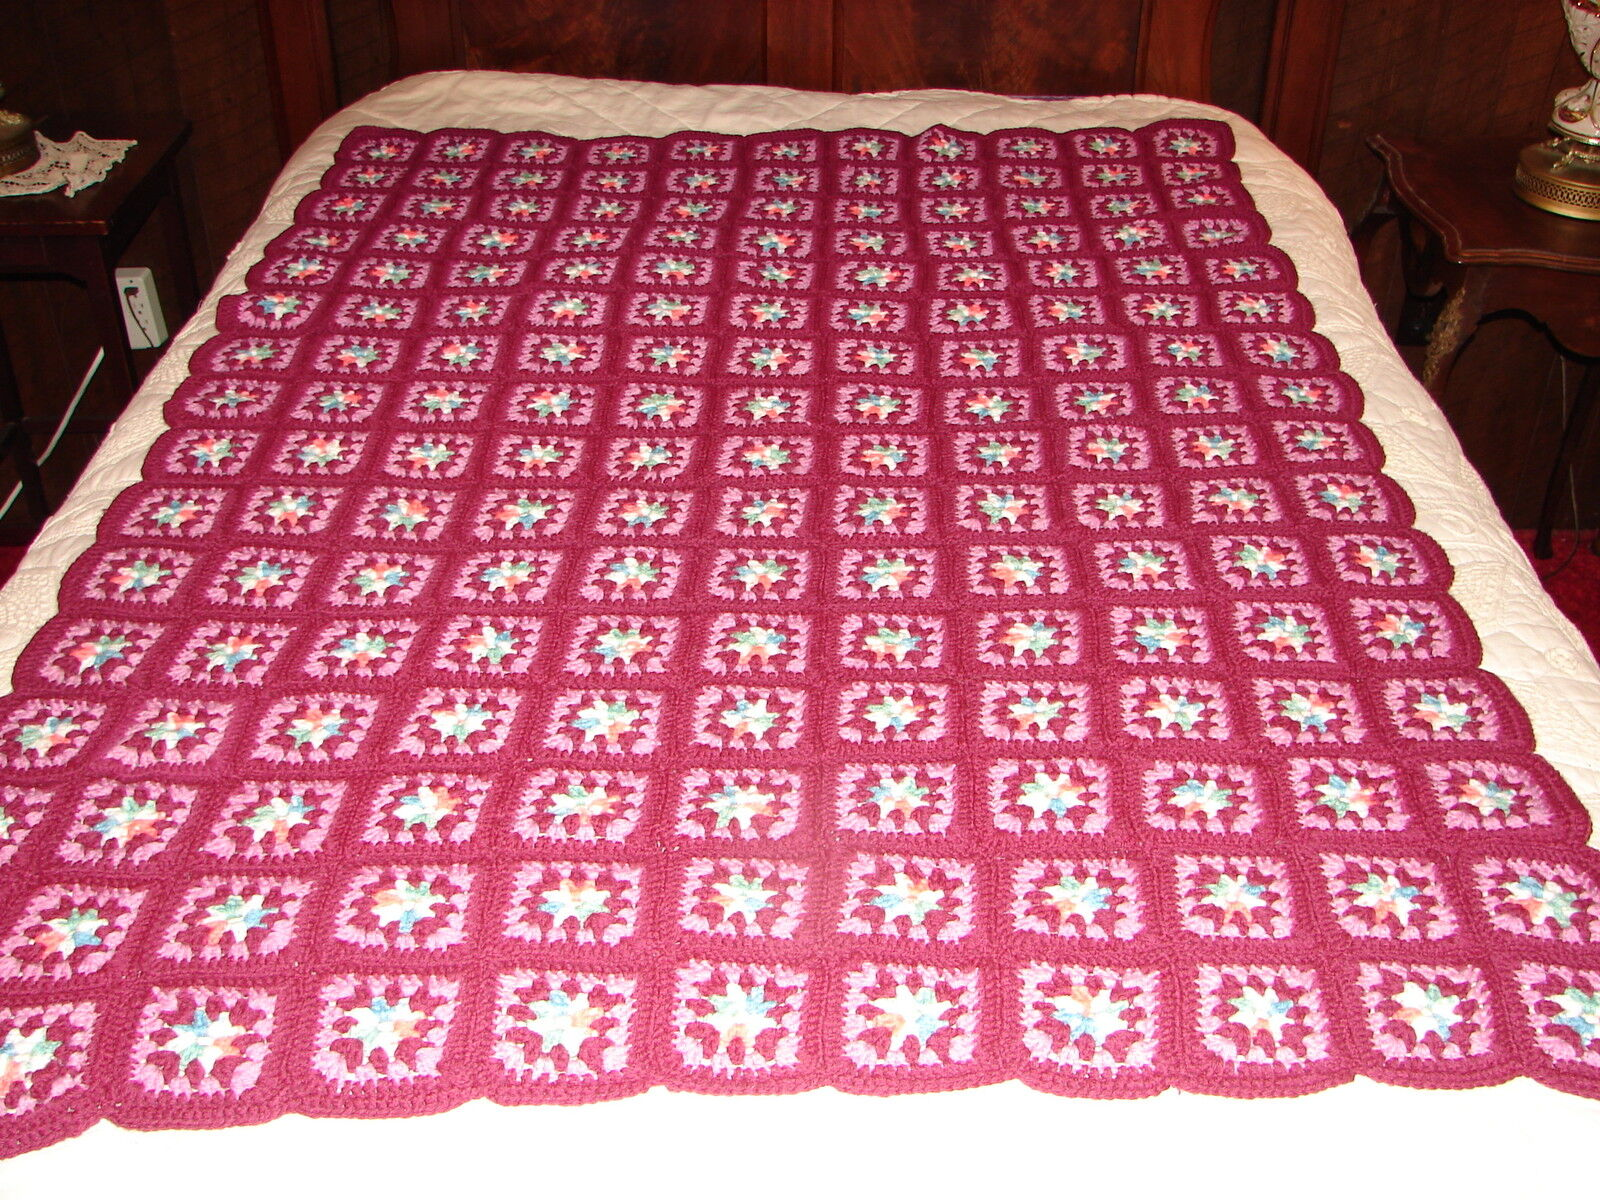 NEW Handcrafted Crochet Afghan Throw Blanket  Granny Square Pattern